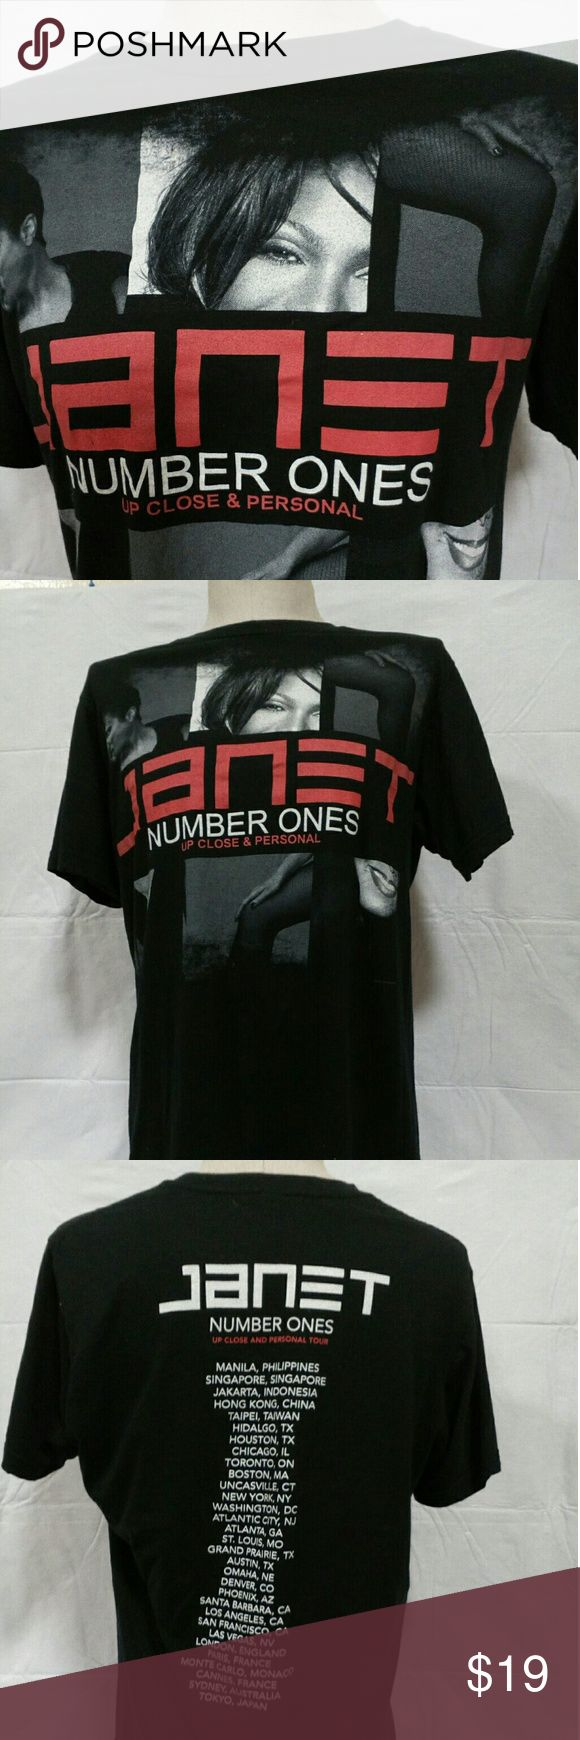 Janet Jackson Number one concert tour 2011 T-shirt PLEASE CHECK MEASUREMENT BEFORE YOU BUY!  LABEL SIZE  M  PIT TO PIT: 20 ''  FROM BACK COLLAR TO BOTTOM: 26''  IN EXCELLENT CONDITION,  HAS MINOR WARE .  NO DAMAGE OR STAINS .  I WASHED ALL MY ITEMS BEFORE SALE!  ITEMS COMES FROM A SMOKE FREE AND PET FREE HOUSE.  IF YOU HAVE ANY QUESTIONS FEEL FREE TO ASK Anvil Tops Tees - Short Sleeve